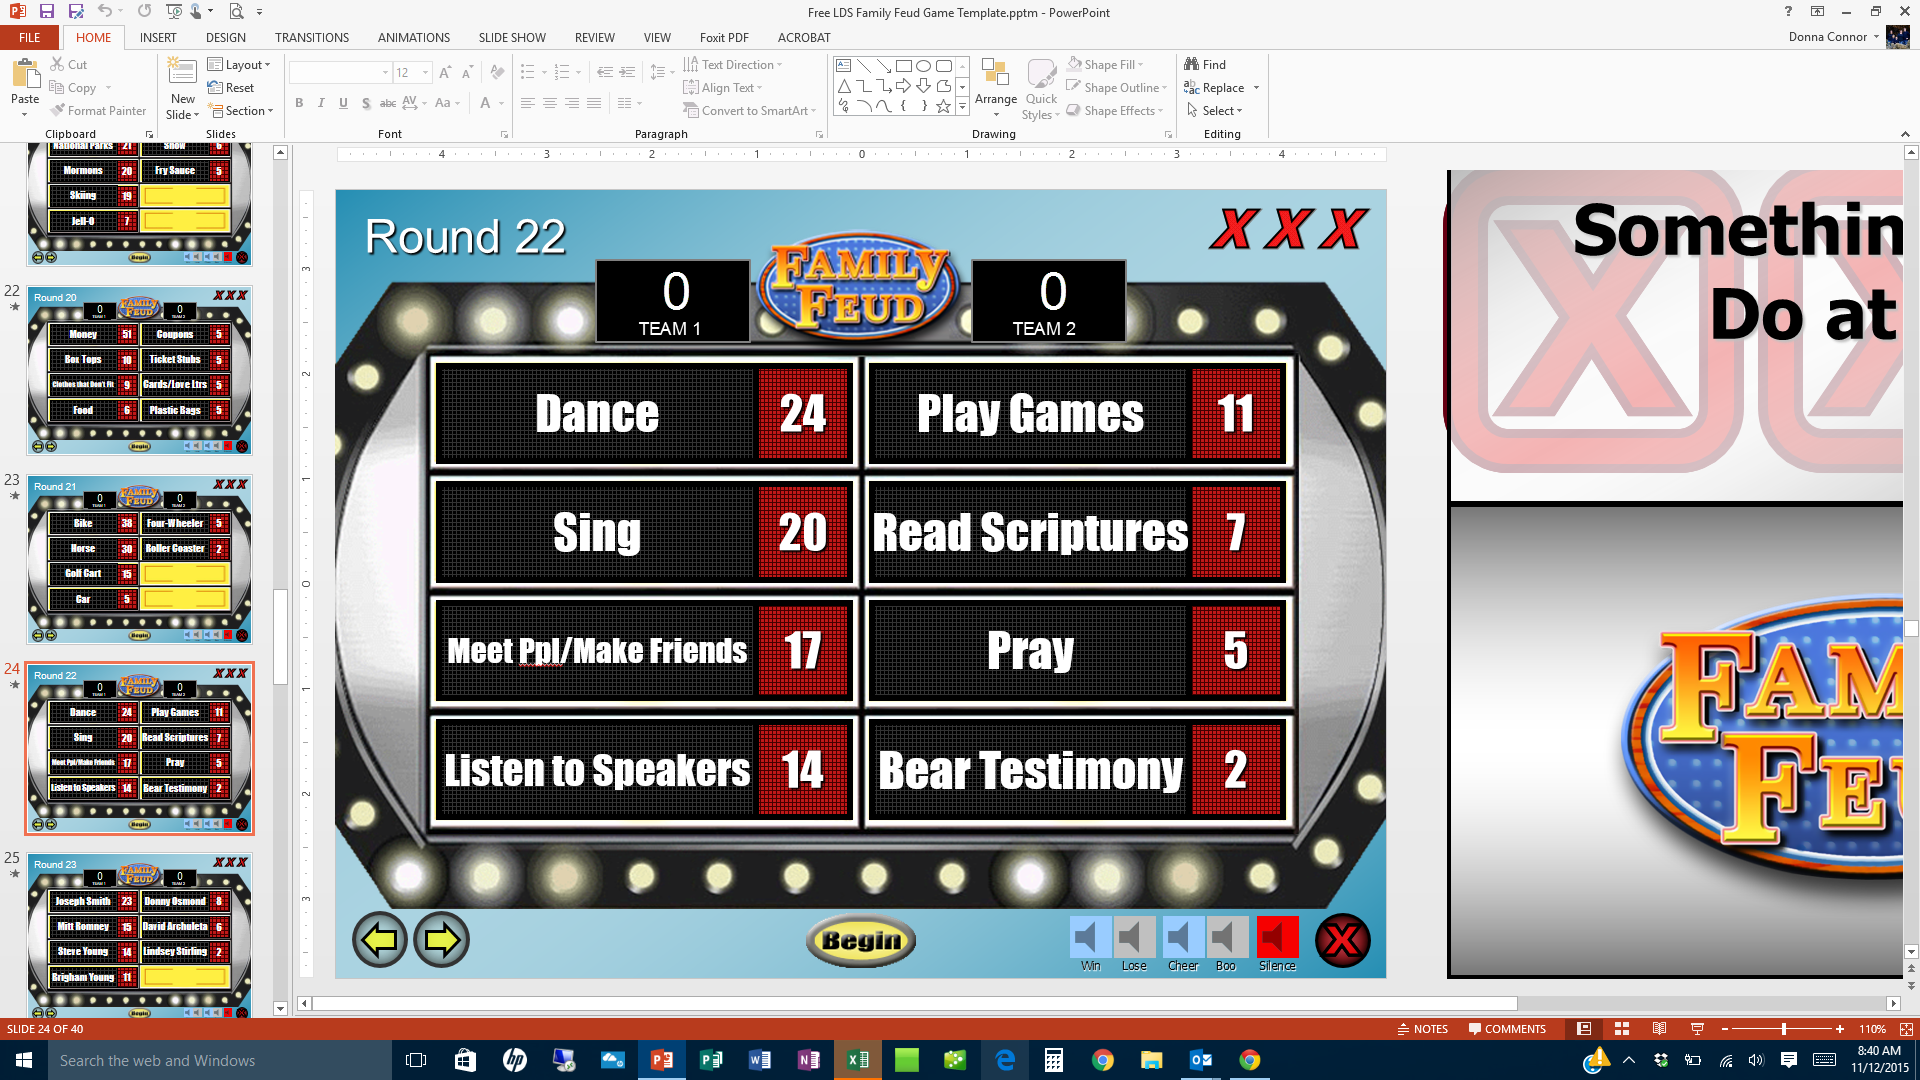 Free Lds Family Feud Game Template Screen Shot Church Pinterest